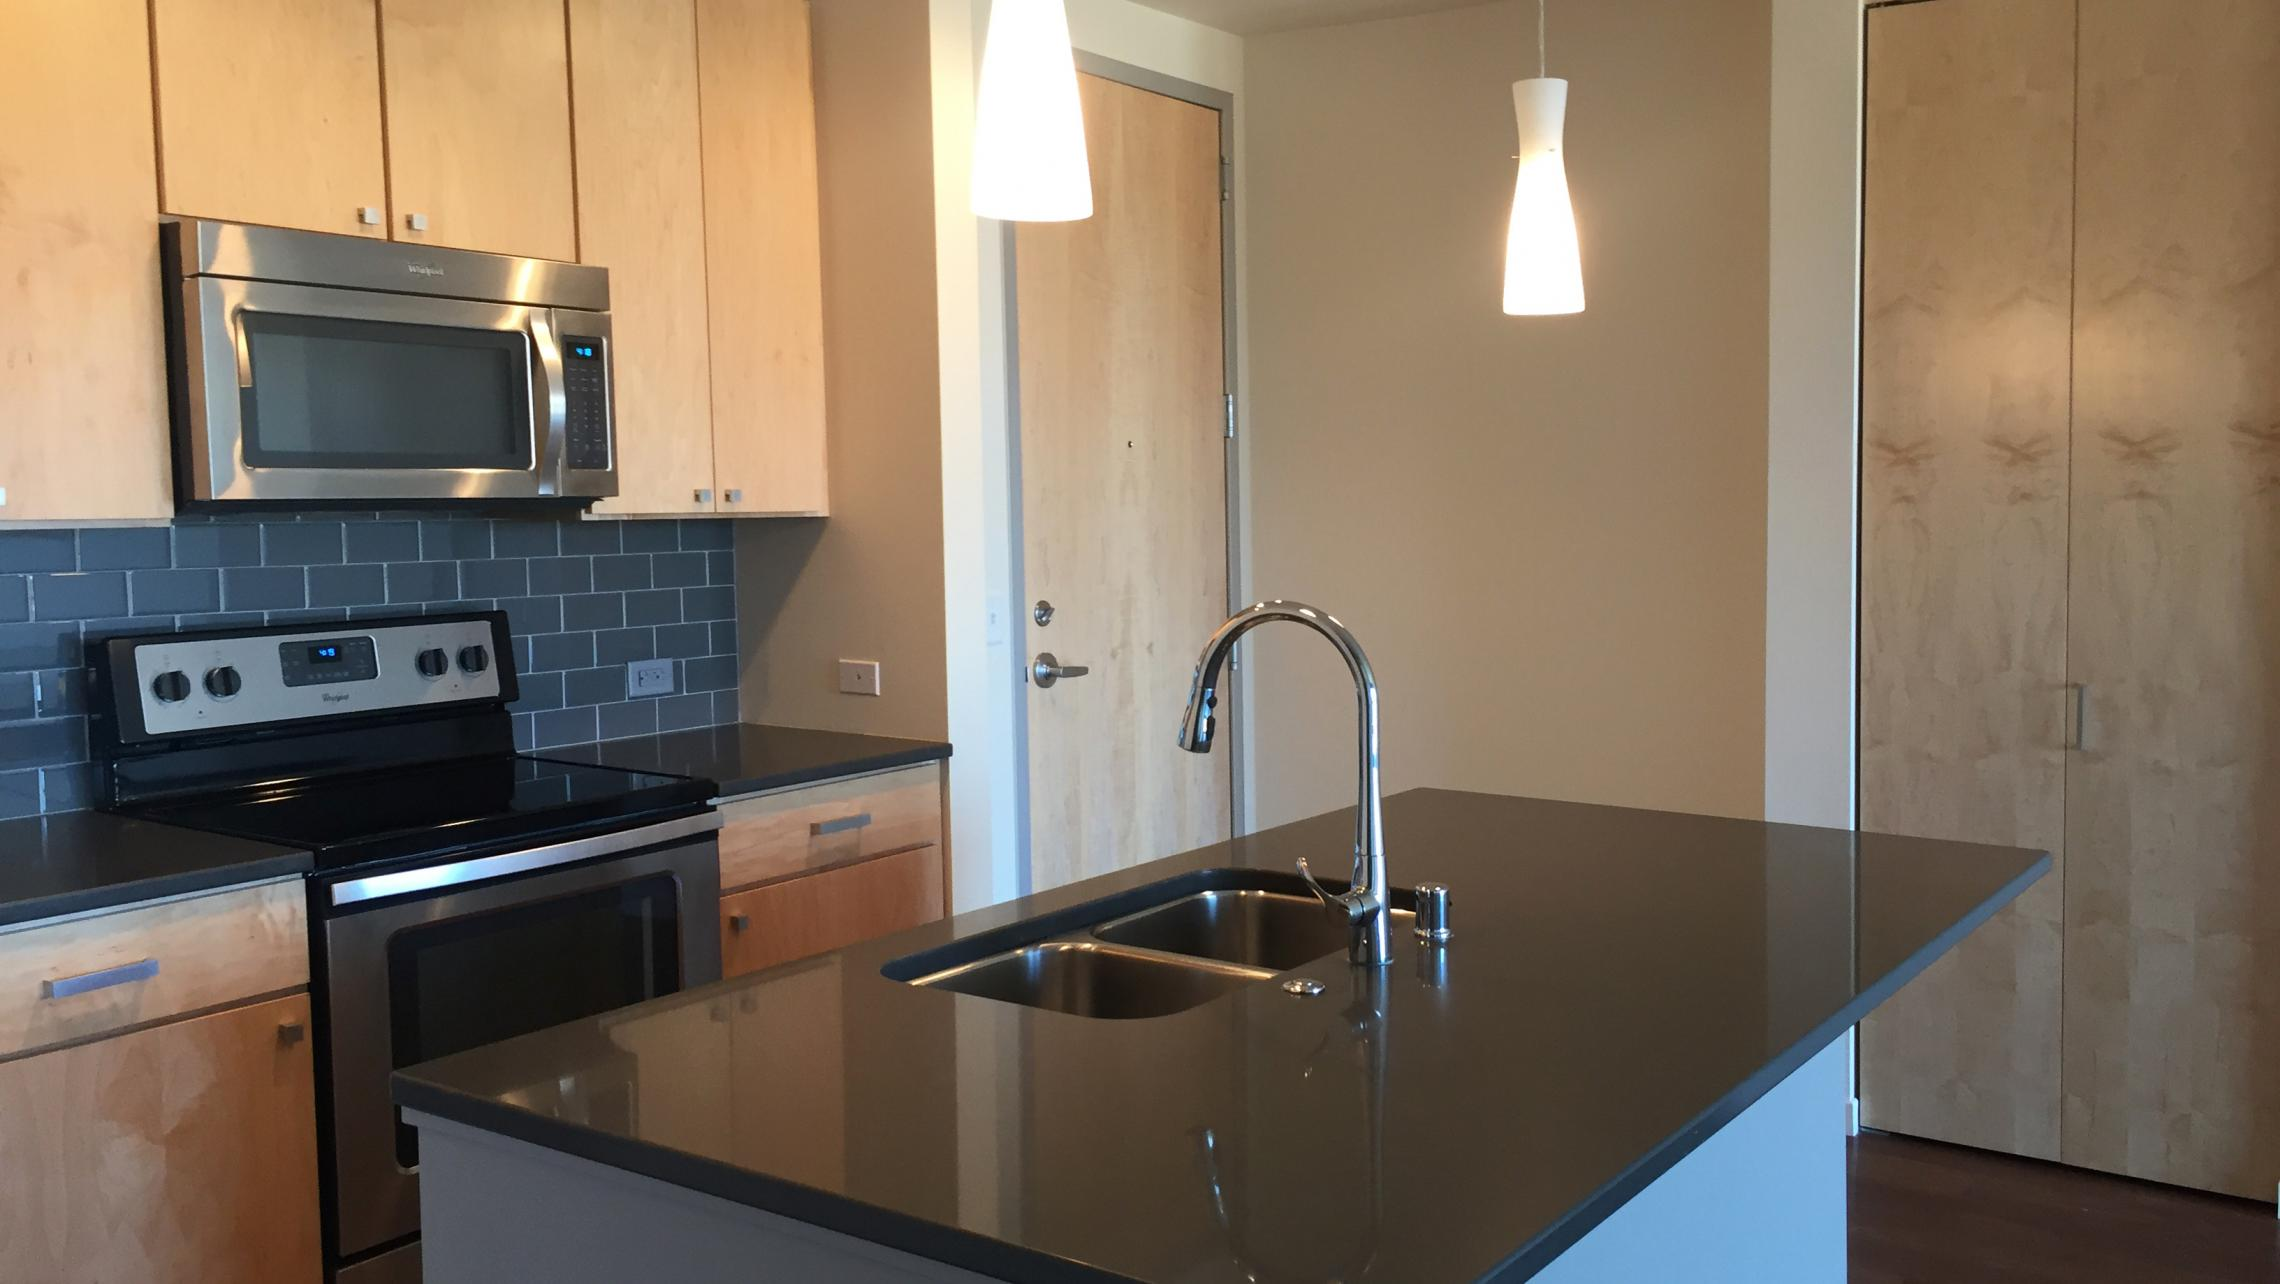 ULI Nine Line Apartment 516 - Kitchen with Stainless Steel Appliances